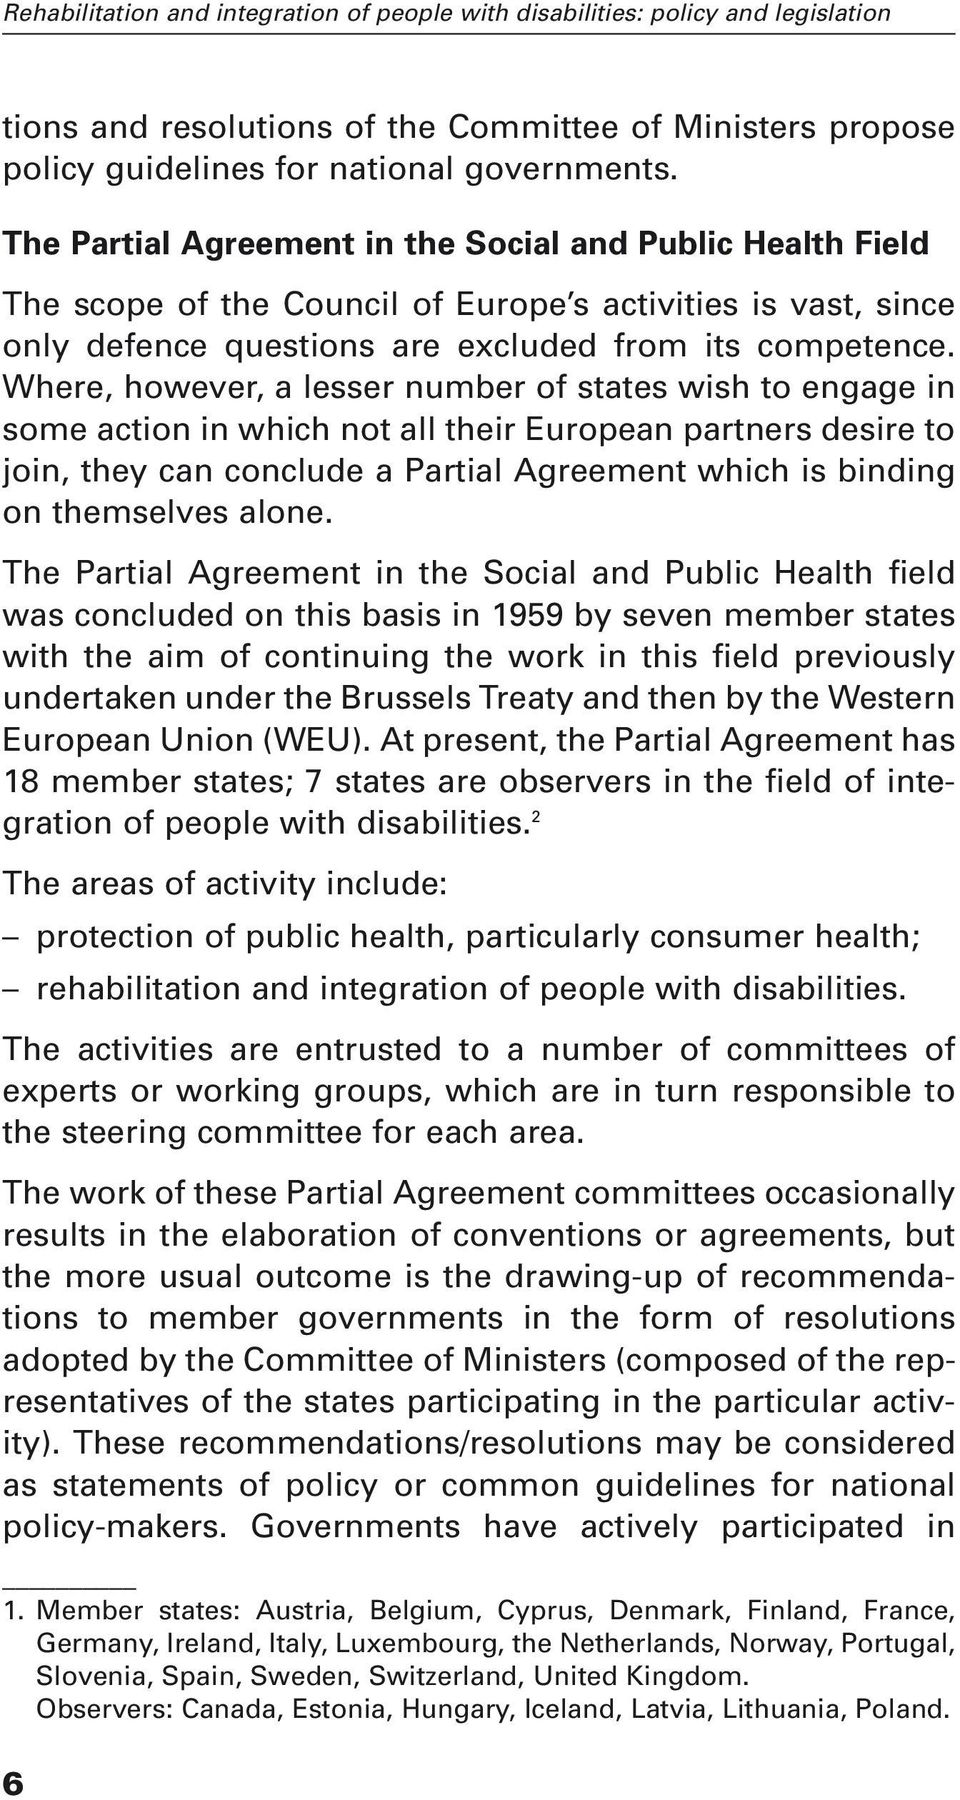 Where, however, a lesser number of states wish to engage in some action in which not all their European partners desire to join, they can conclude a Partial Agreement which is binding on themselves